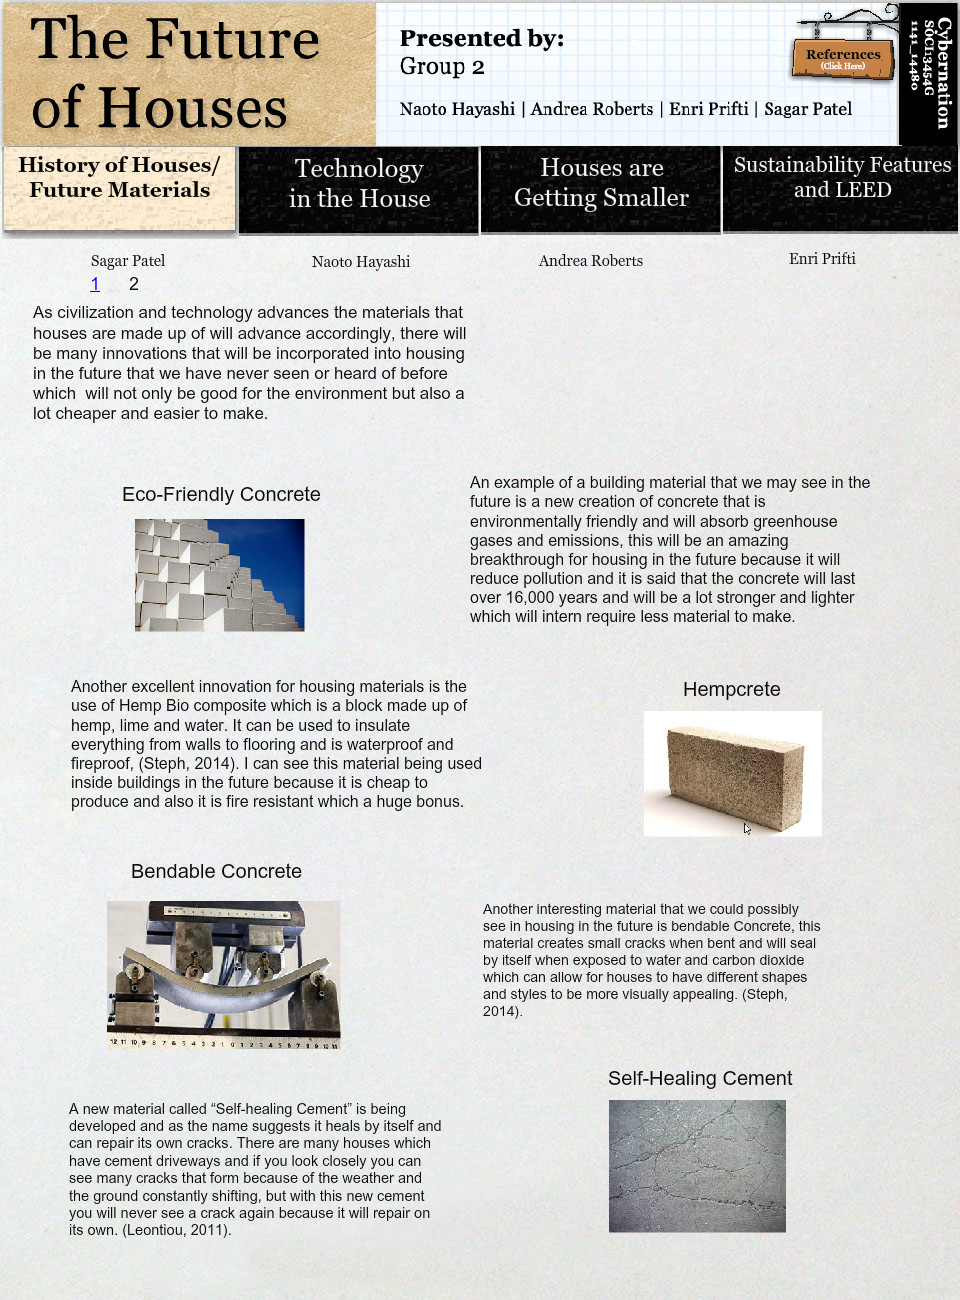 The Future of Houses - Future Materials